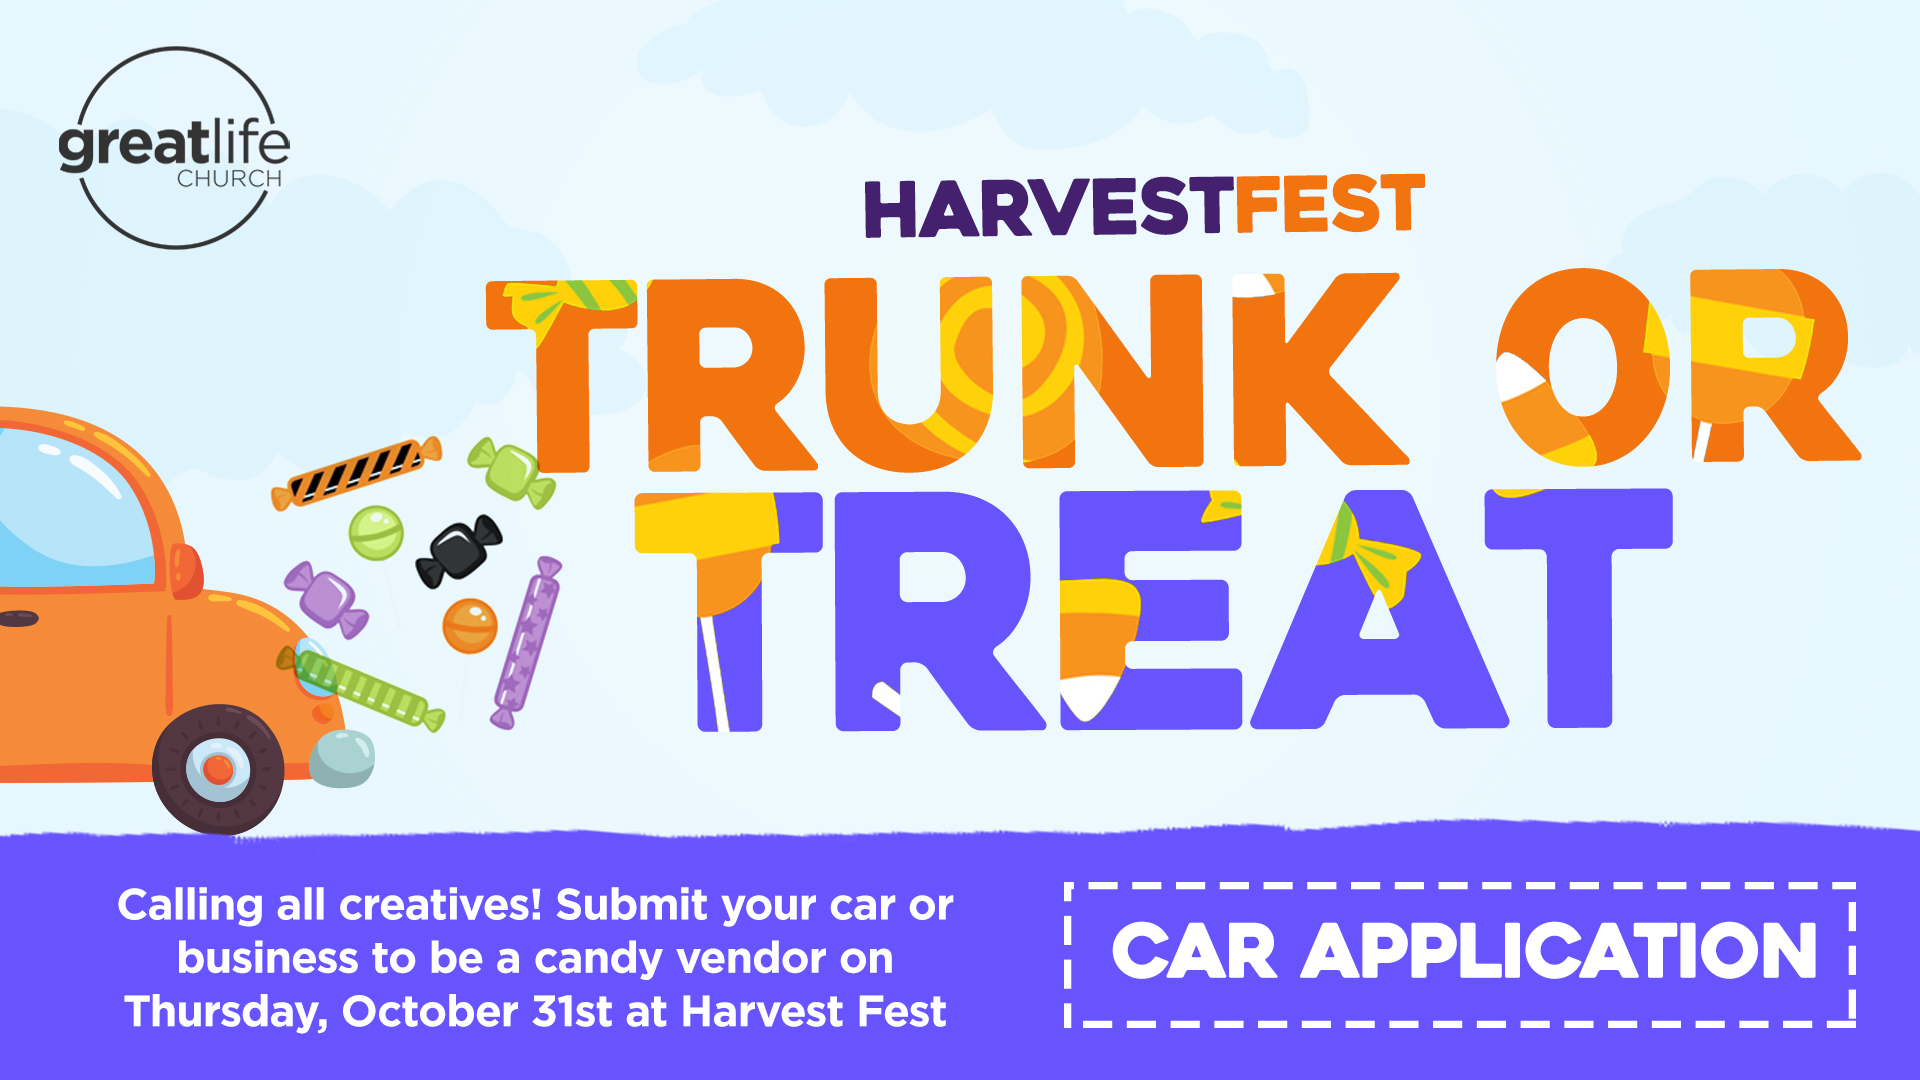 Car Application - Be a part of Harvest Fest 2019, decorate your car with a crazy and fun theme, and hand out candy! Submit your personal car or business by filling out an application below.